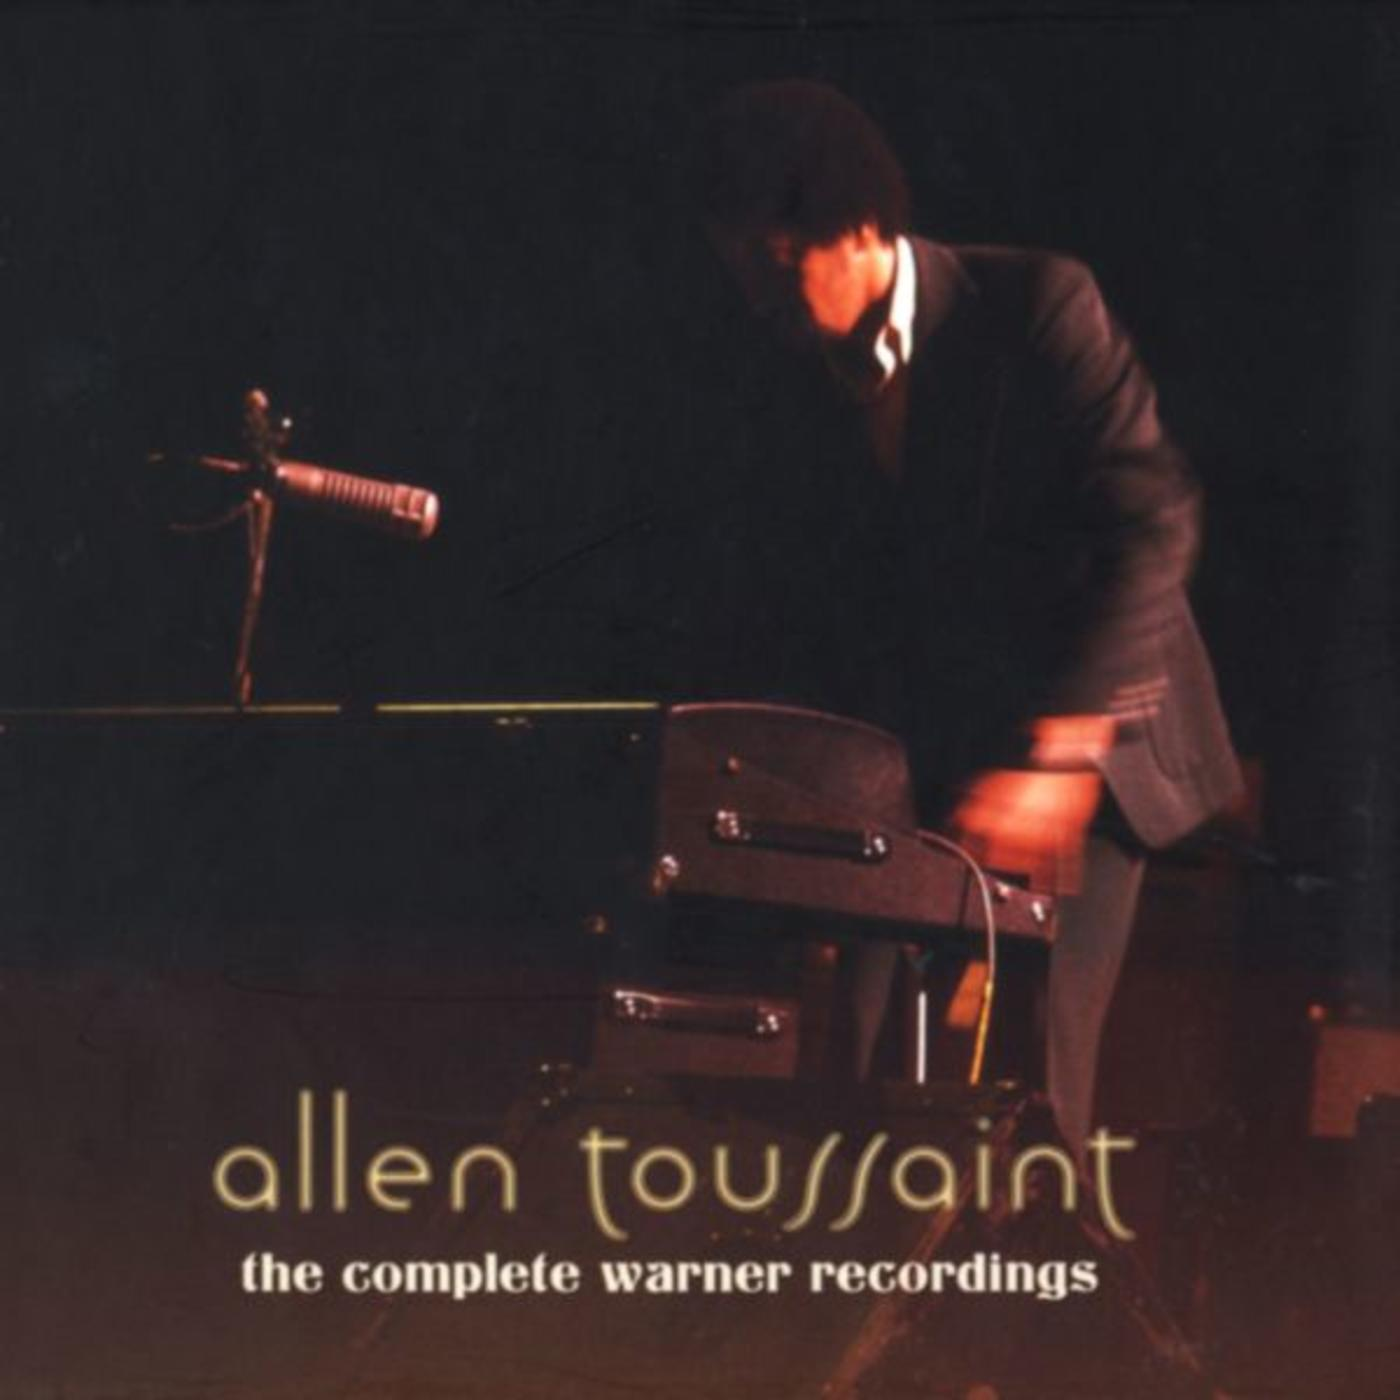 The Complete Warner Recordings